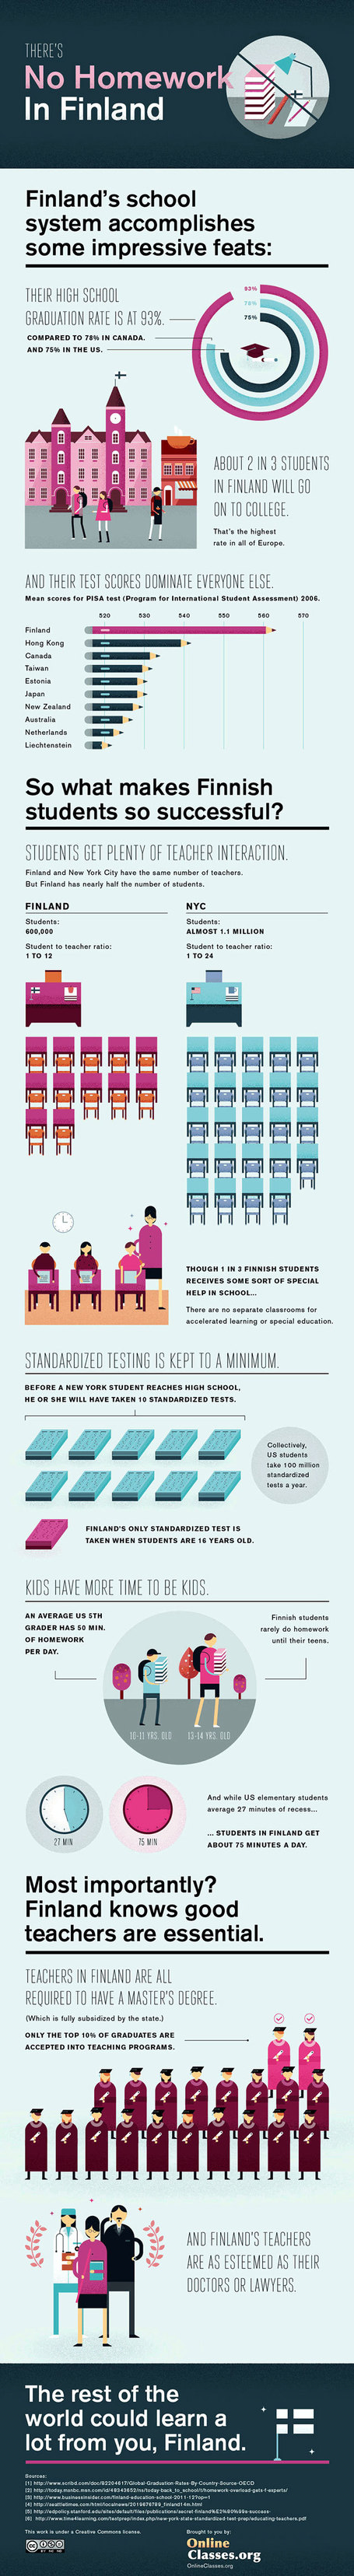 Finland's School System - Infographic | The *Official AndreasCY* Daily Magazine | Scoop.it